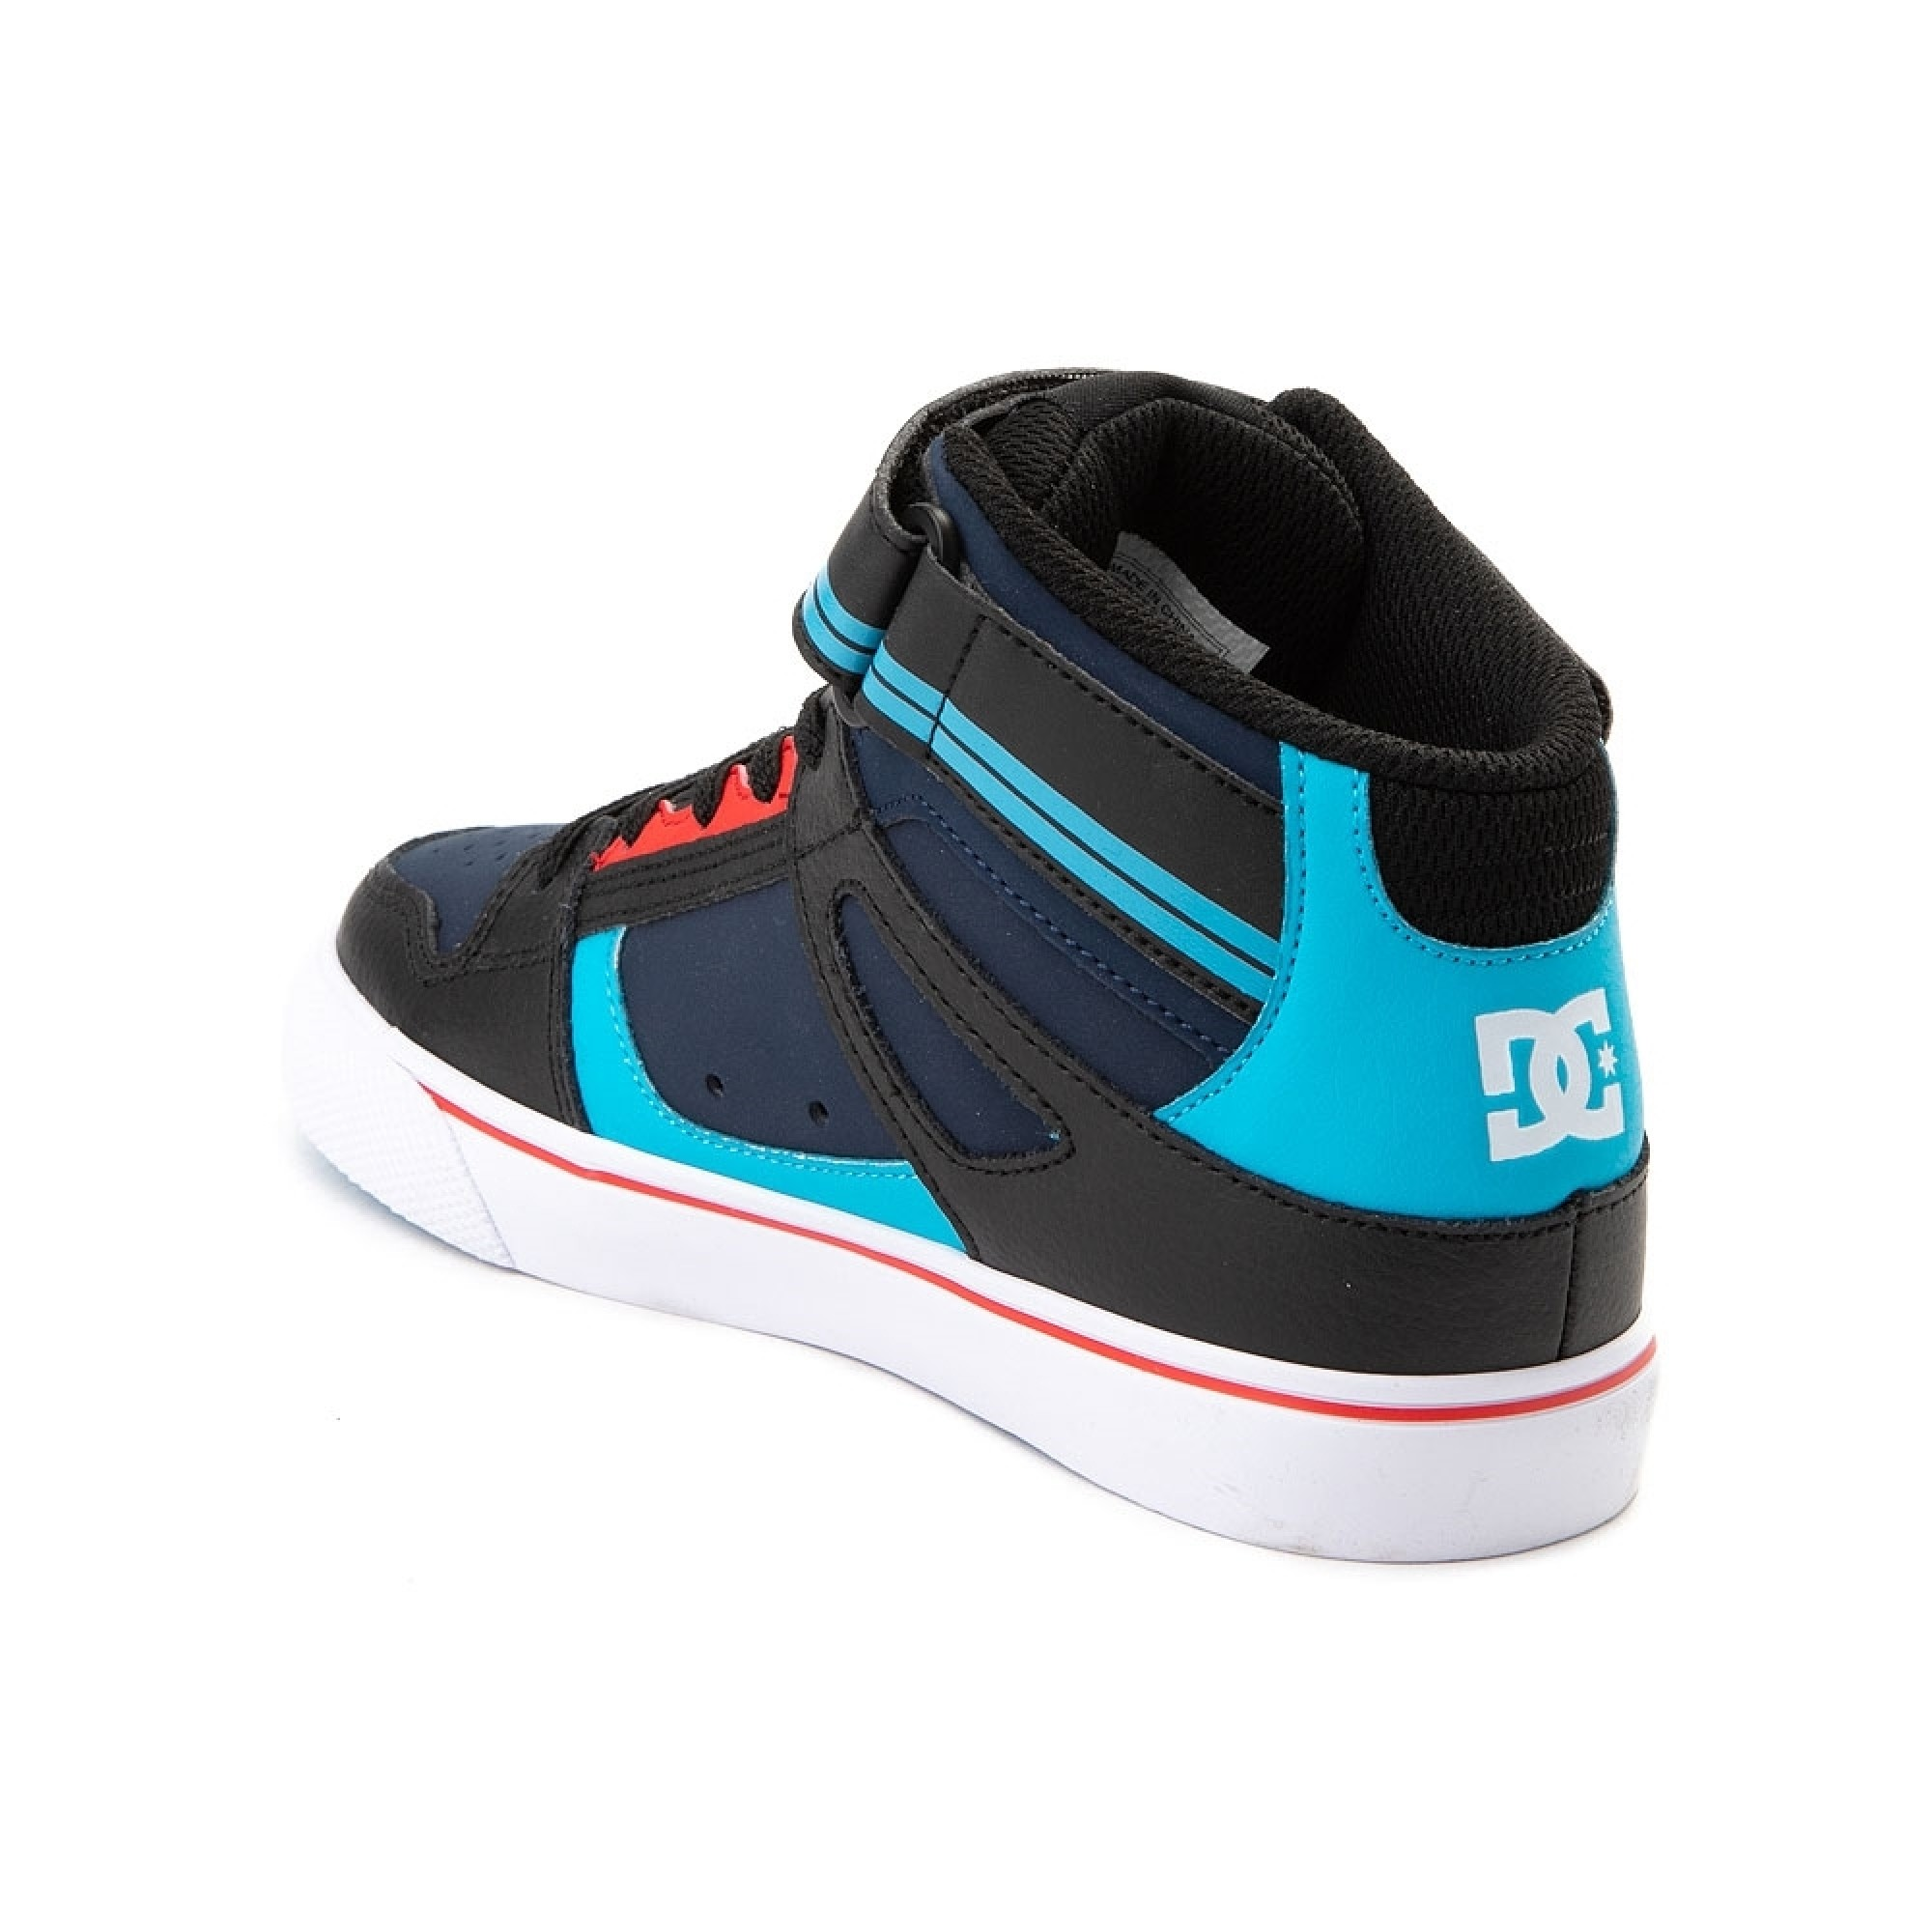 aabc75898c Venue Store DC Pure High Top EV Youth Shoe - Blue/Black/Red Free ...